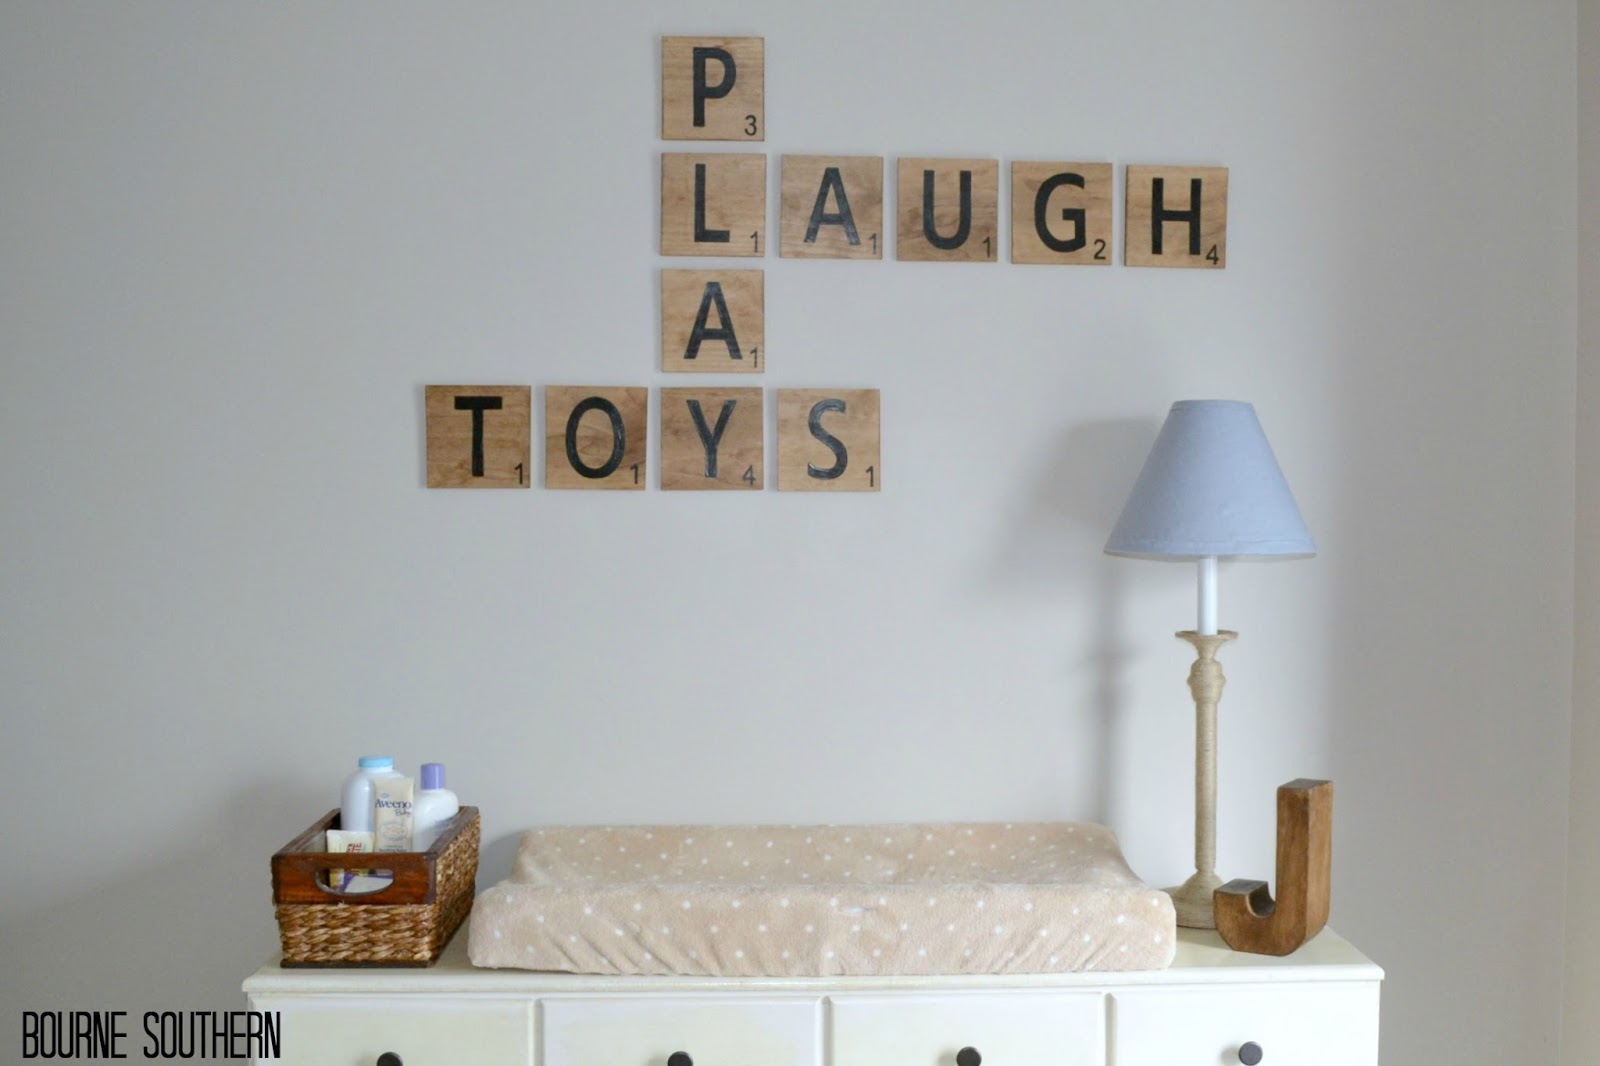 Bourne southern diy jumbo scrabble tile wall decor - Scrabble decoracion ...